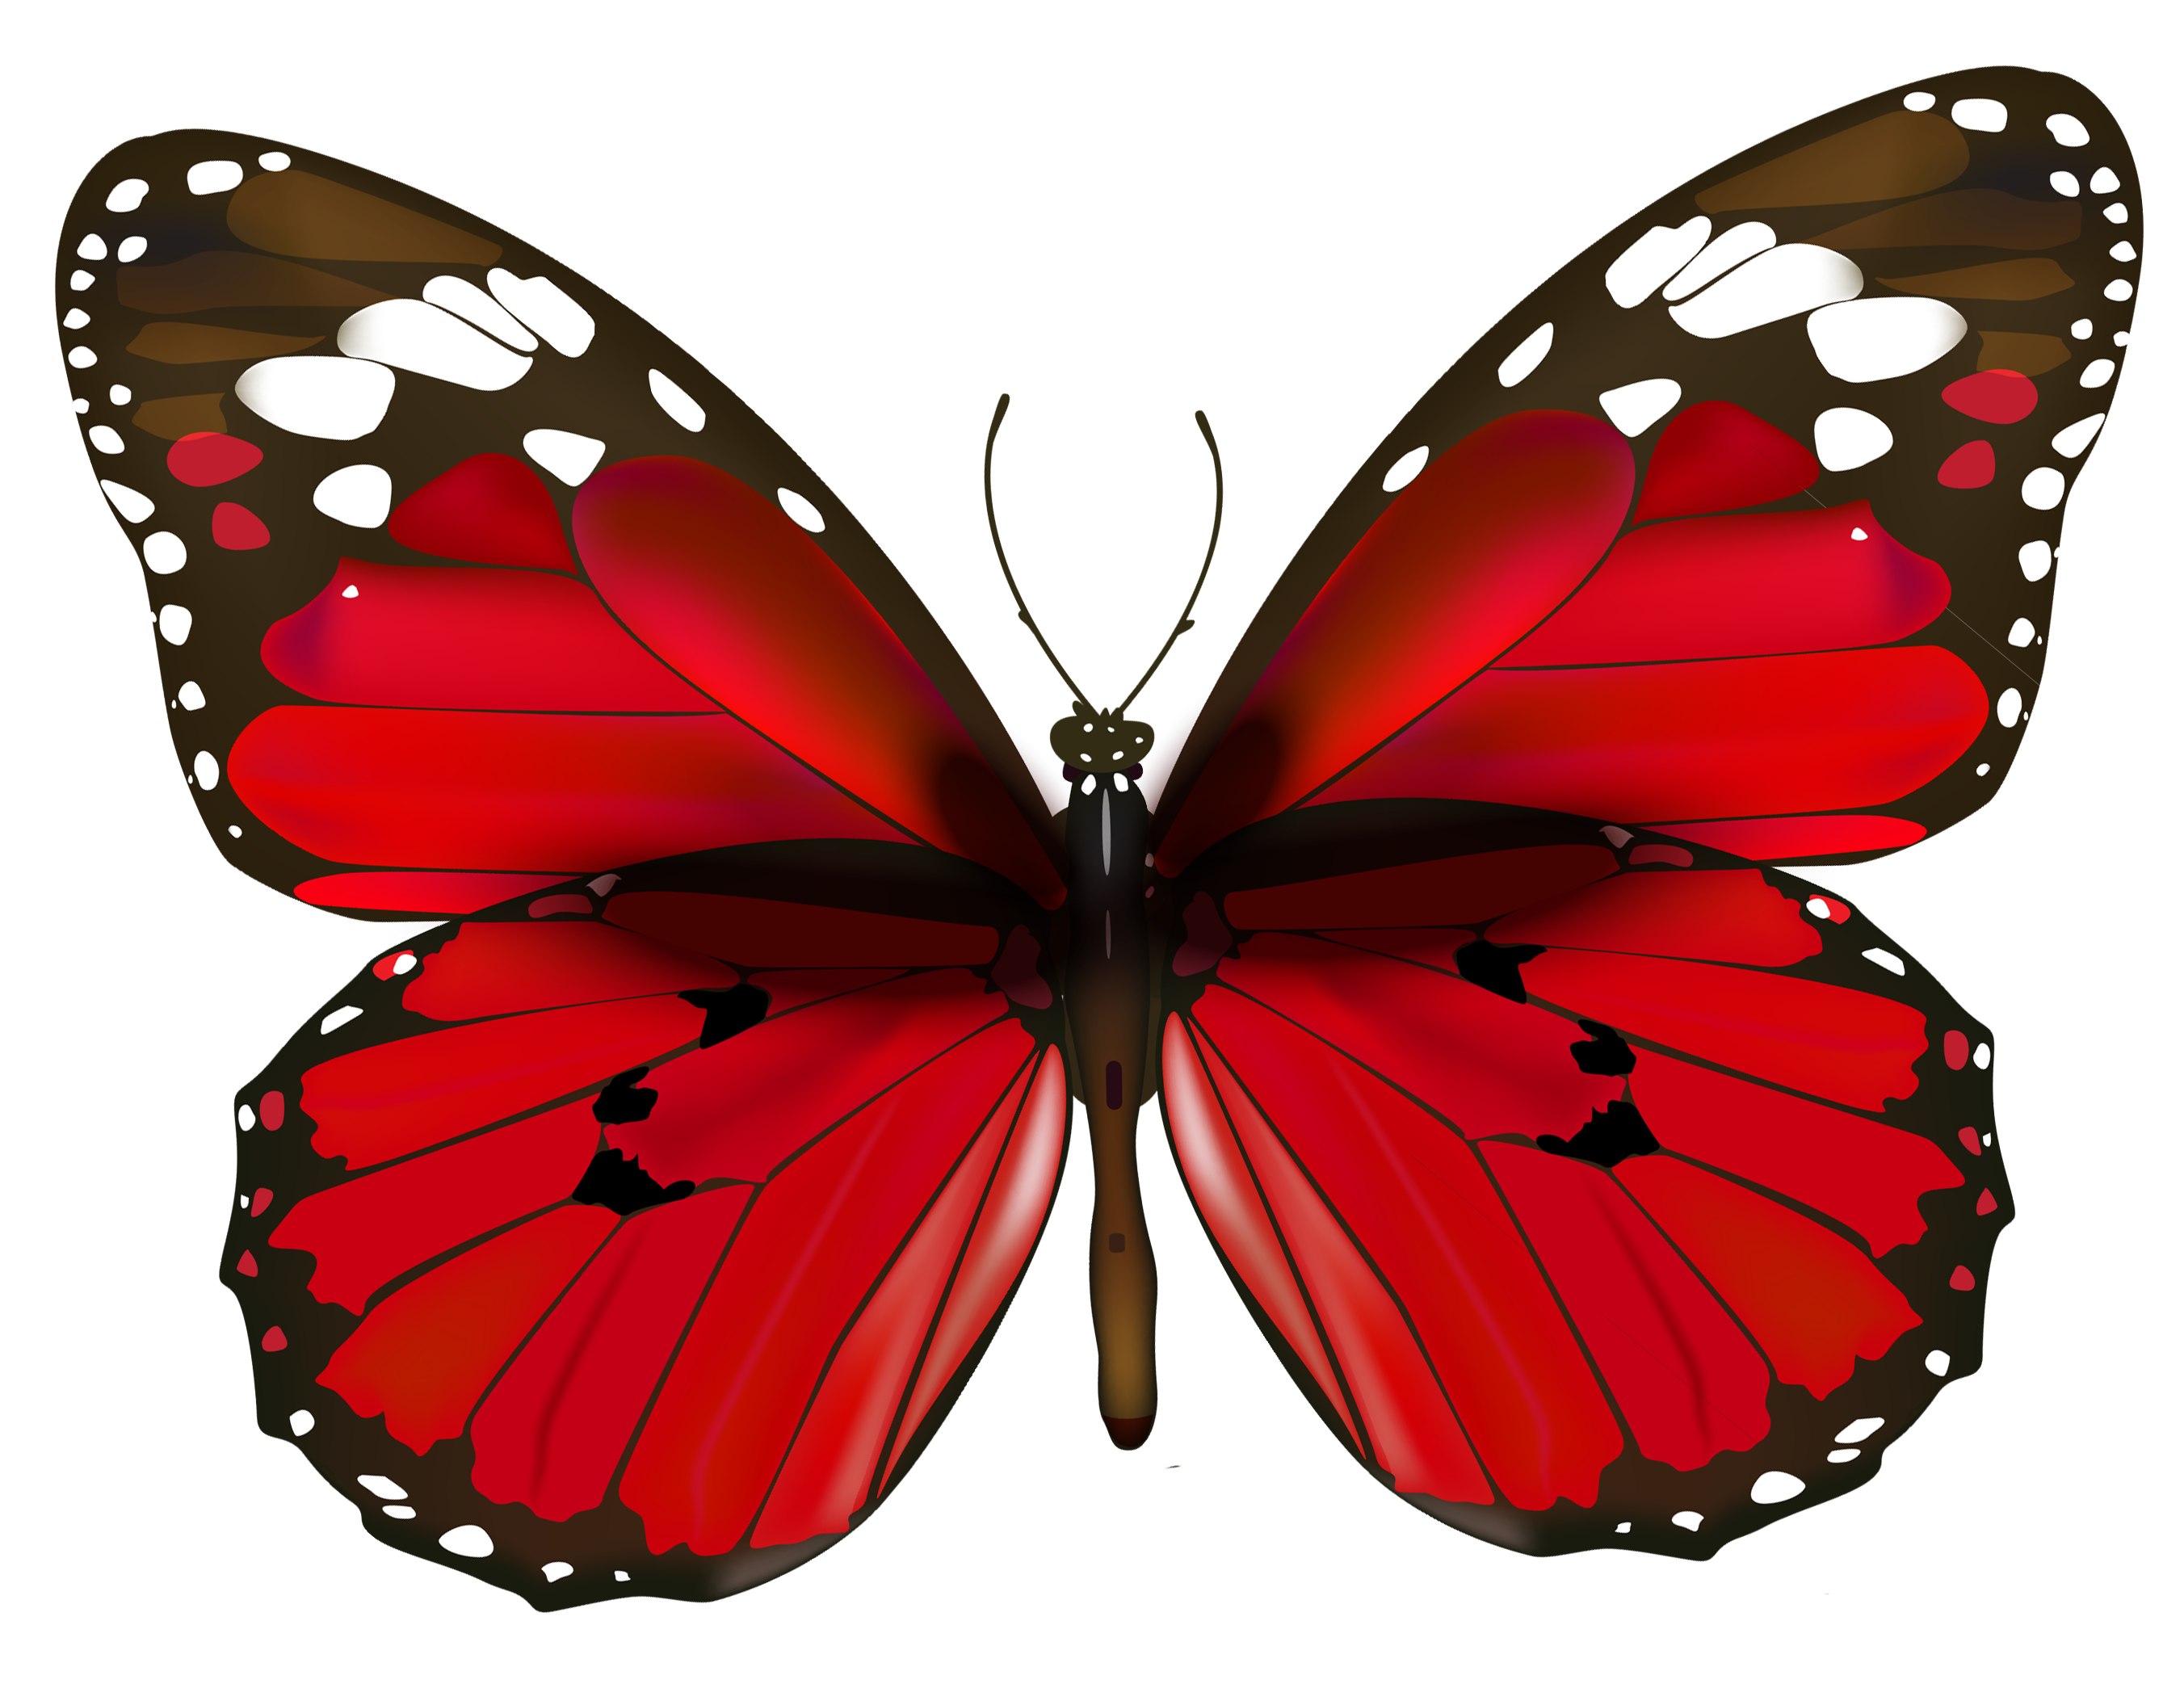 Wing Gold >> Butterfly Pictures, Images, Graphics - Page 3